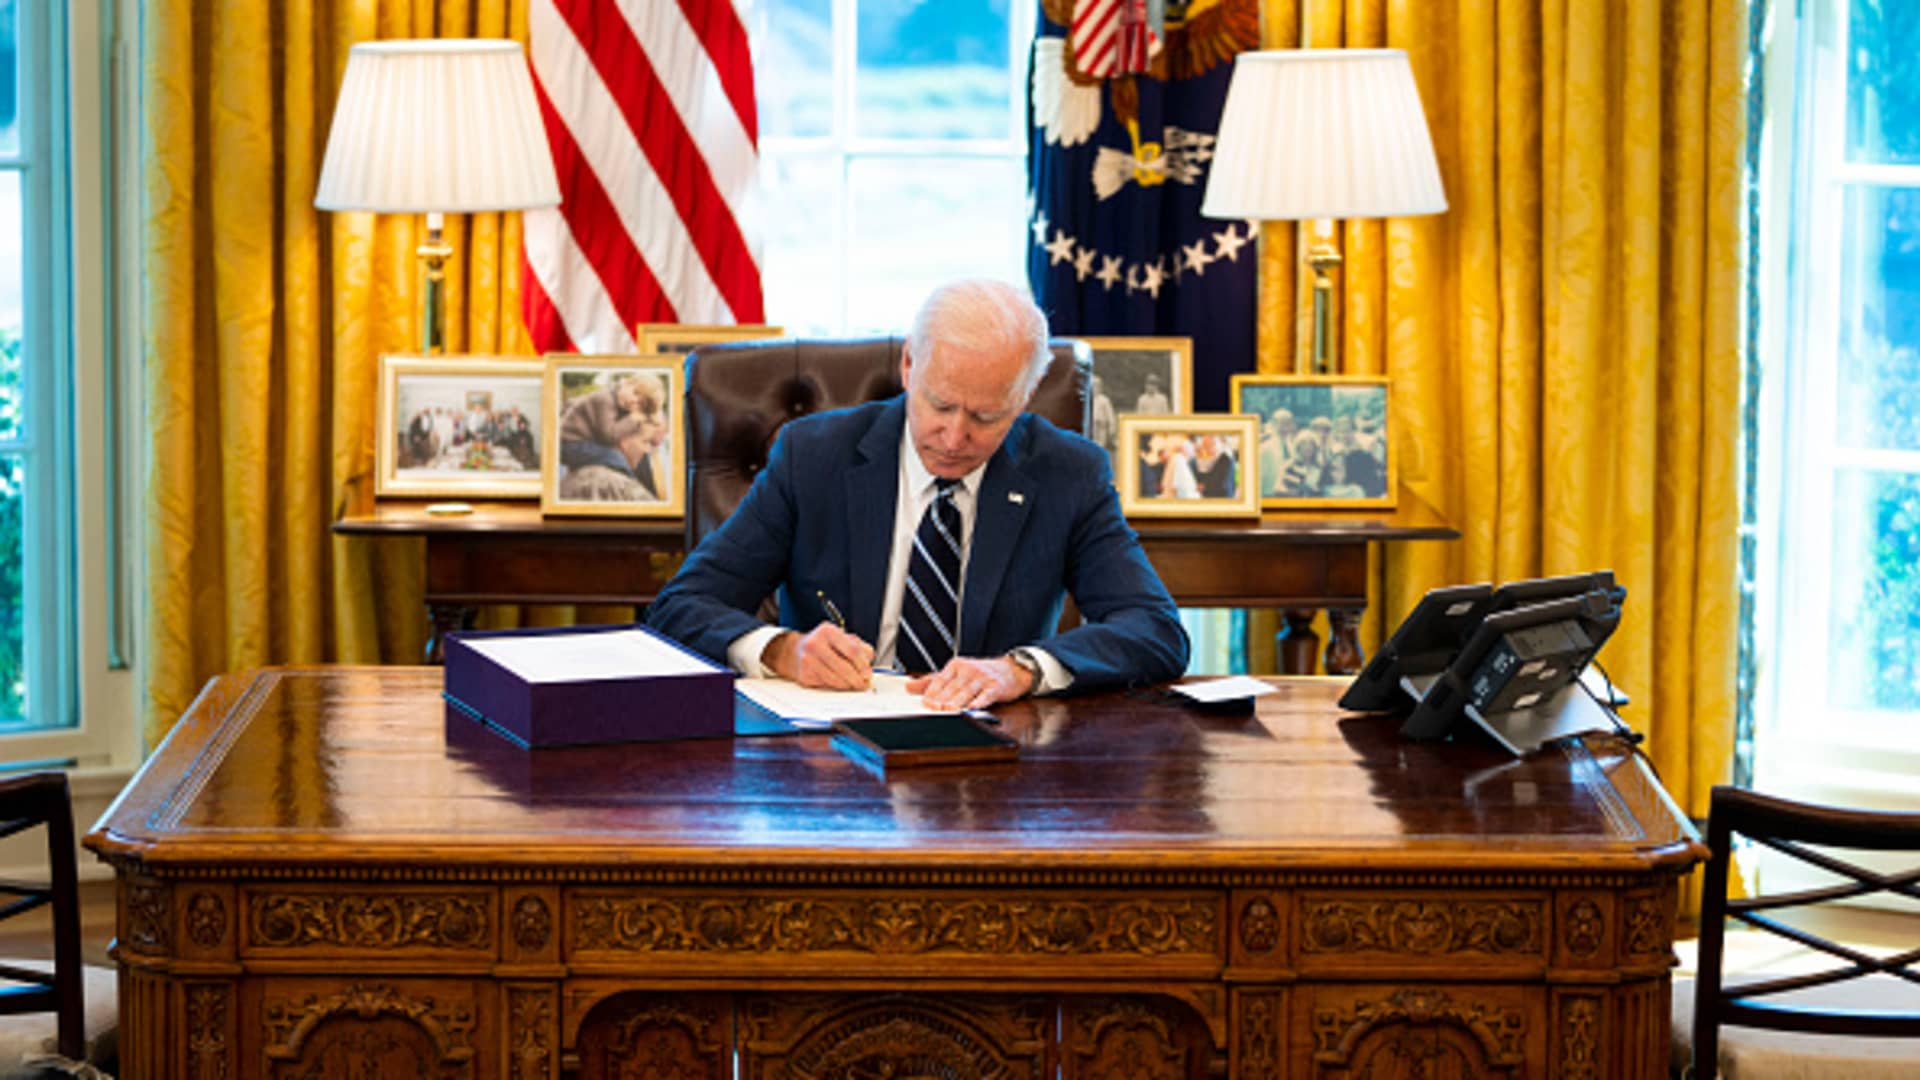 President Joe Biden signed the $1.9 trillion American Rescue Plan Act of 2021 on March 11 in the Oval Office.